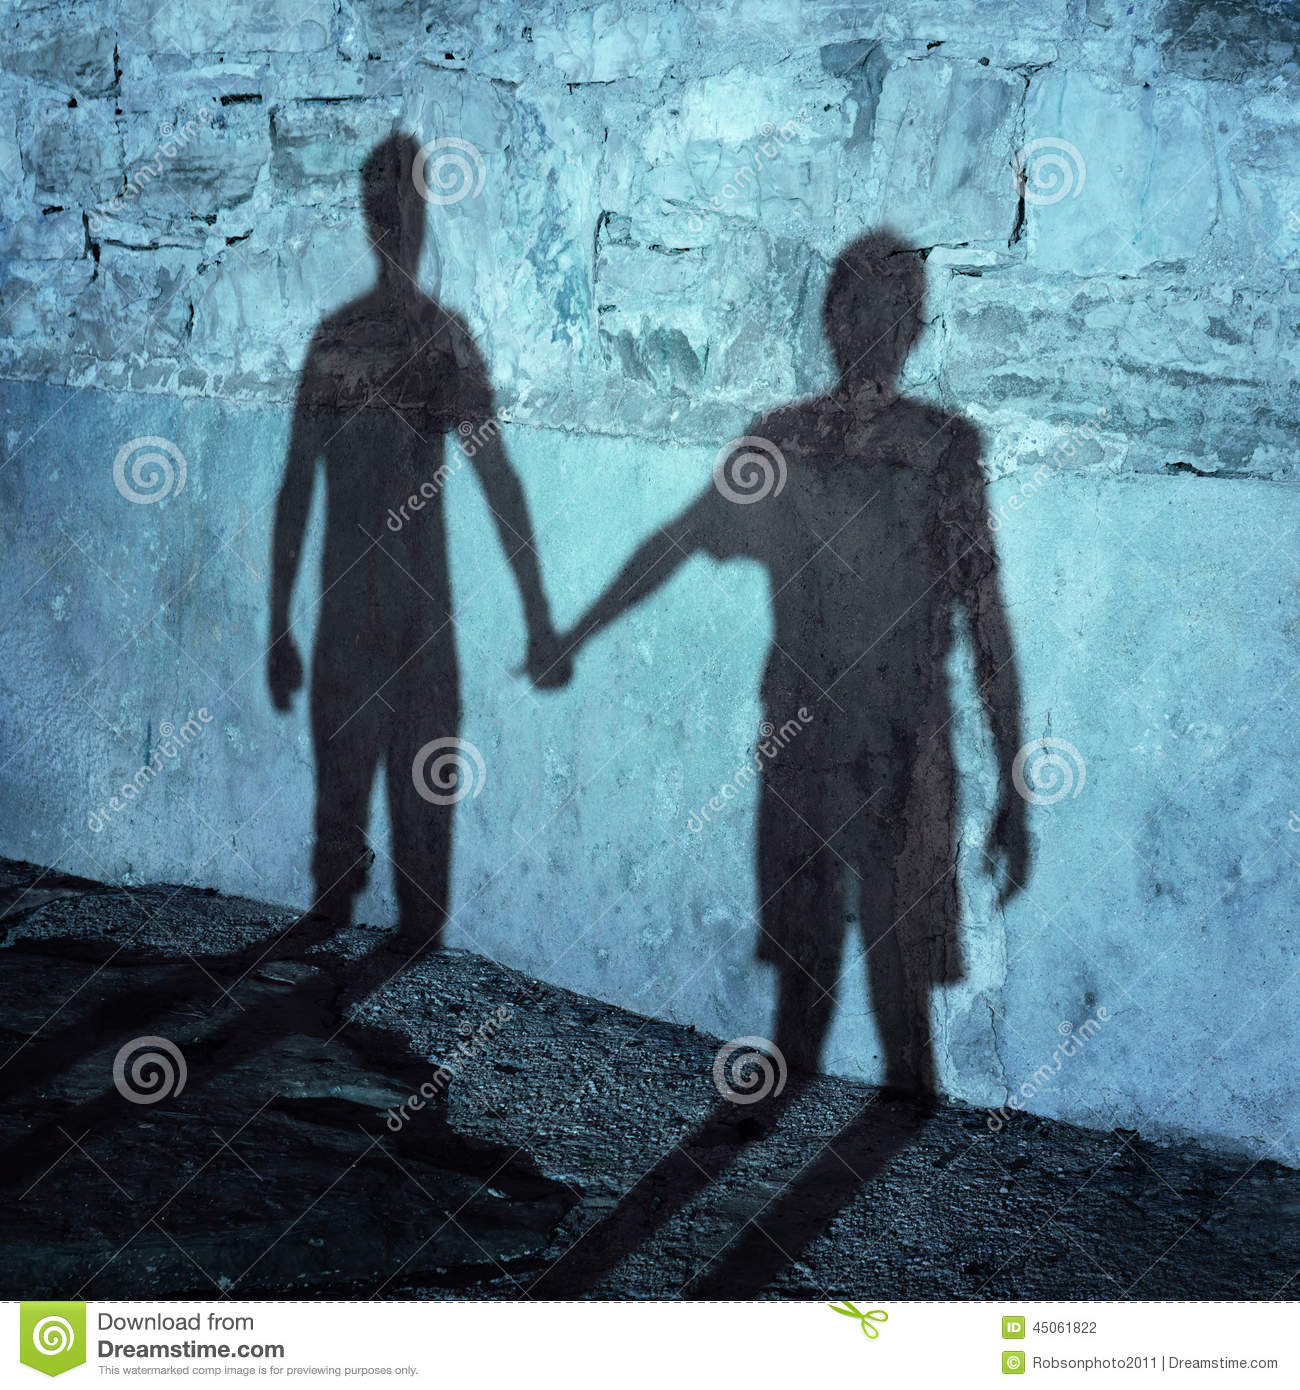 Silhouette Of Two People Holding Hands Stock Photo - Image ...